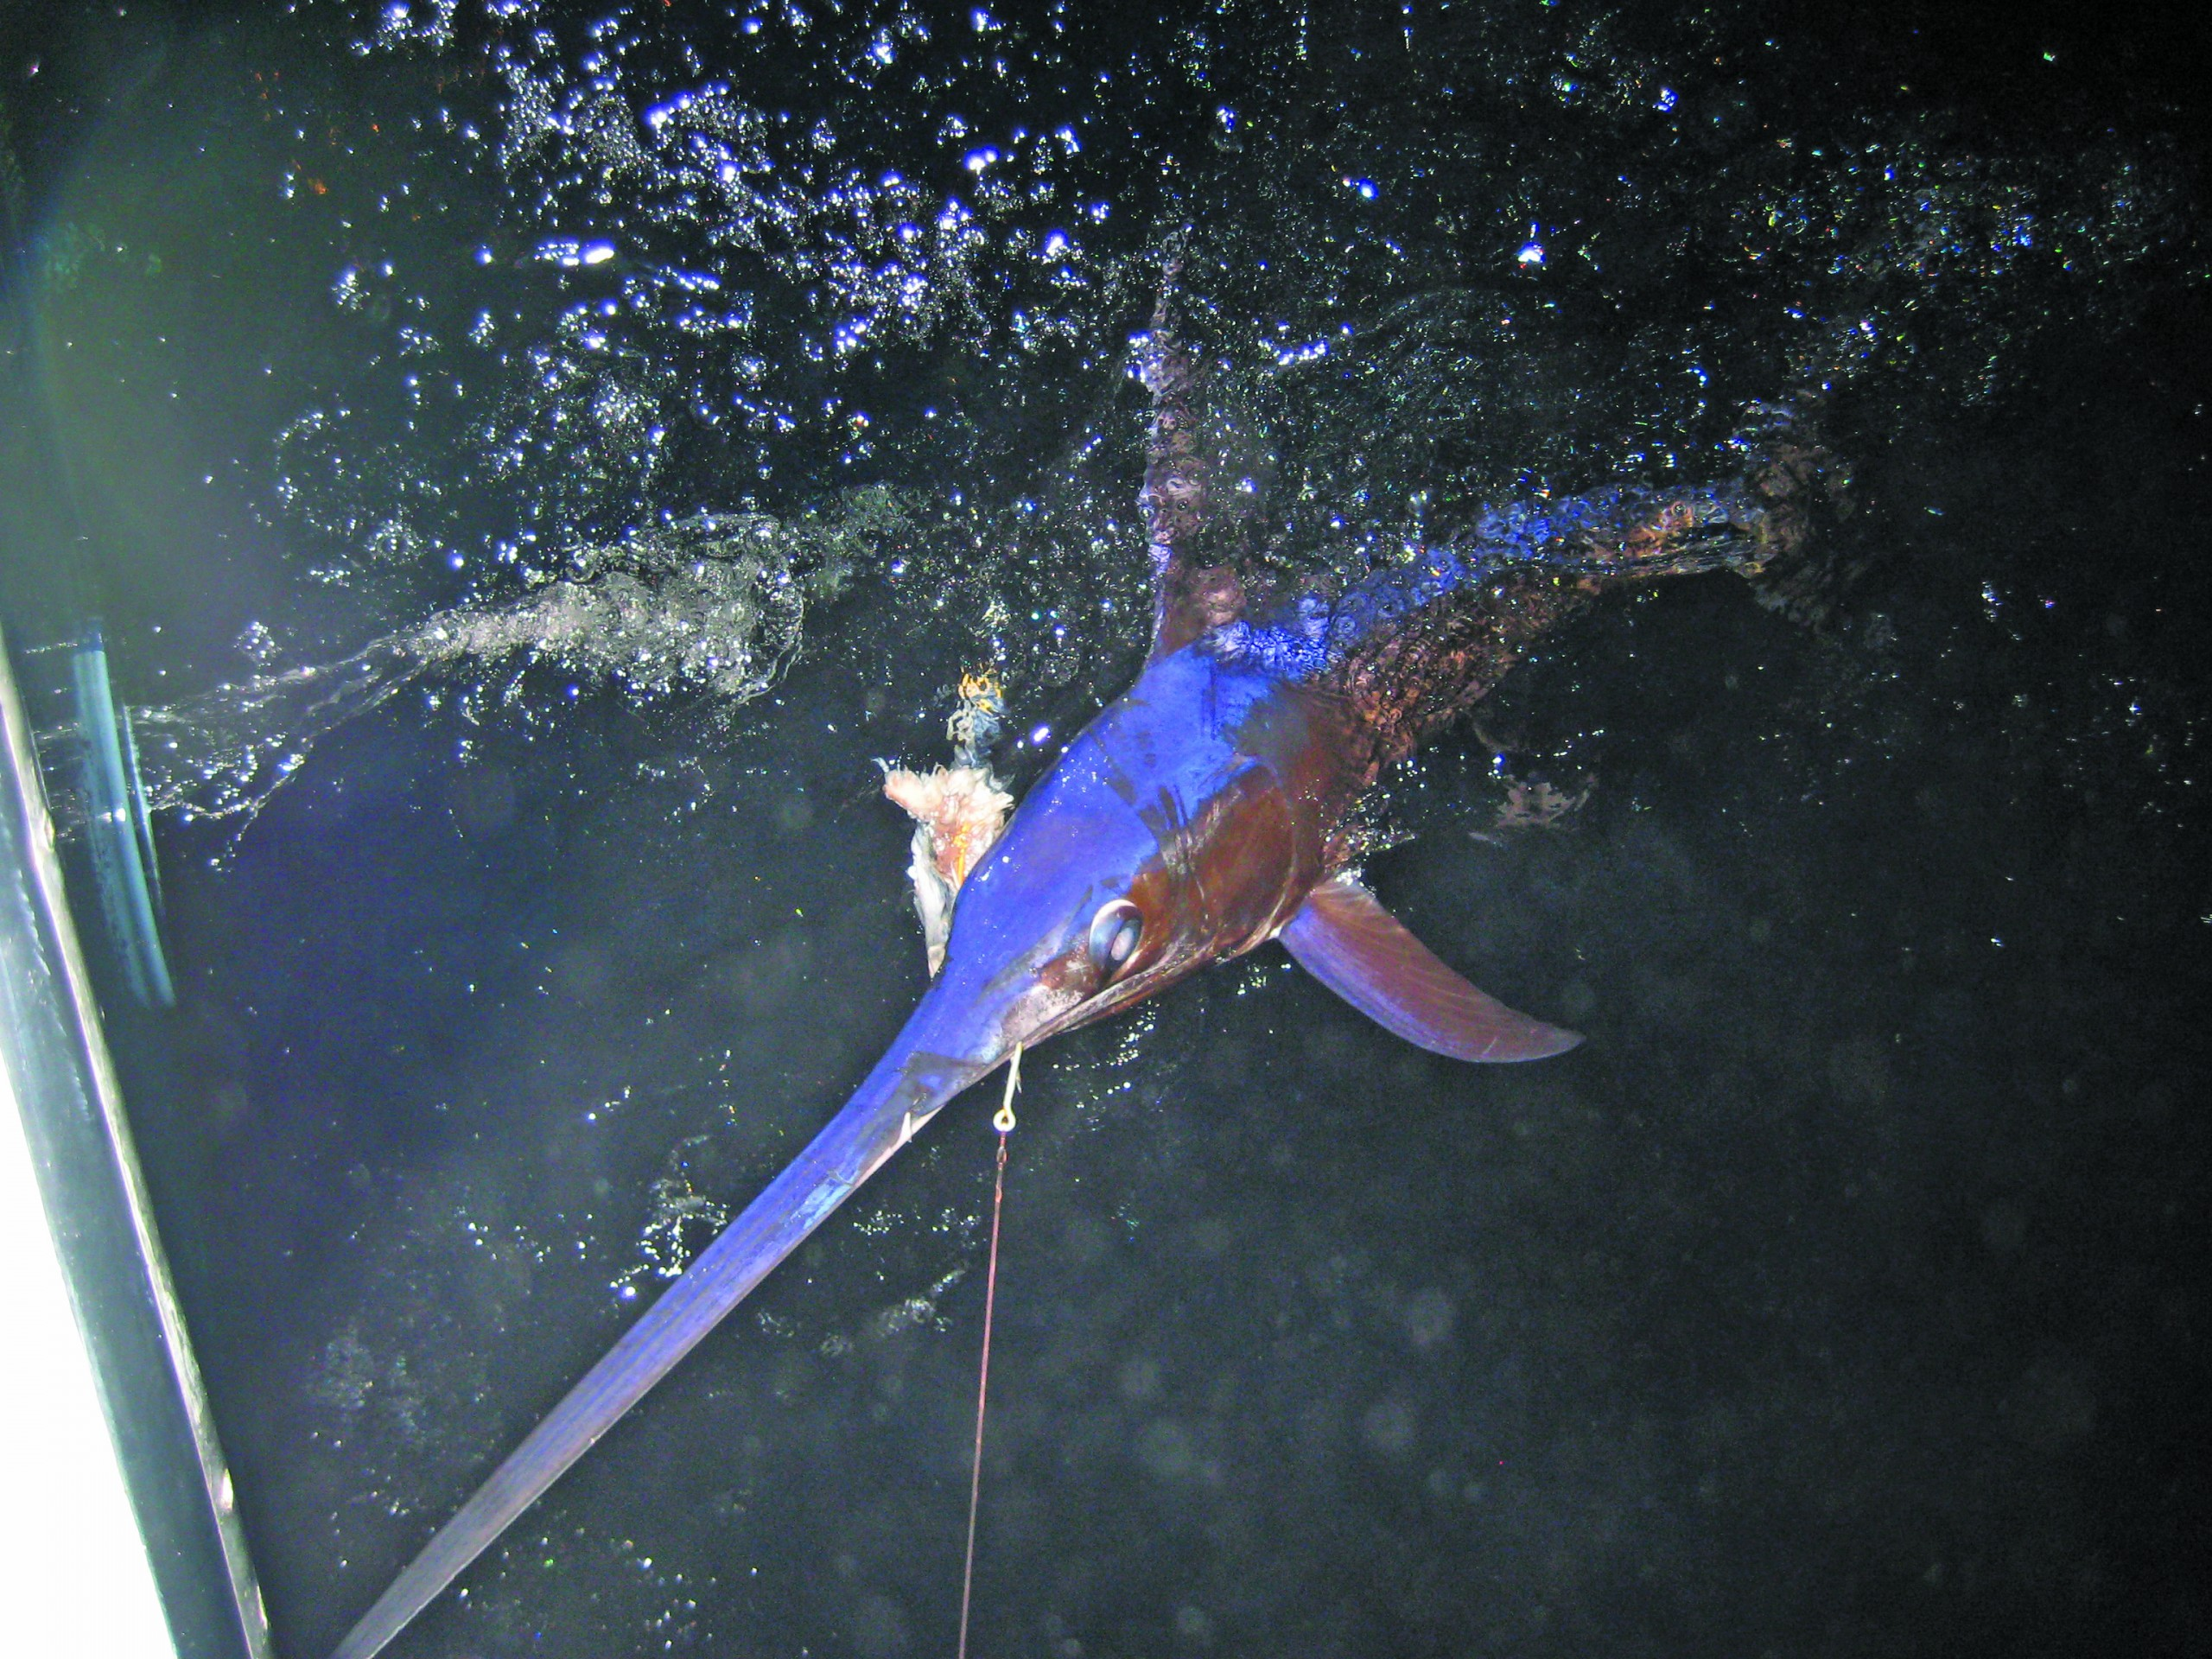 swordfish in the water at night